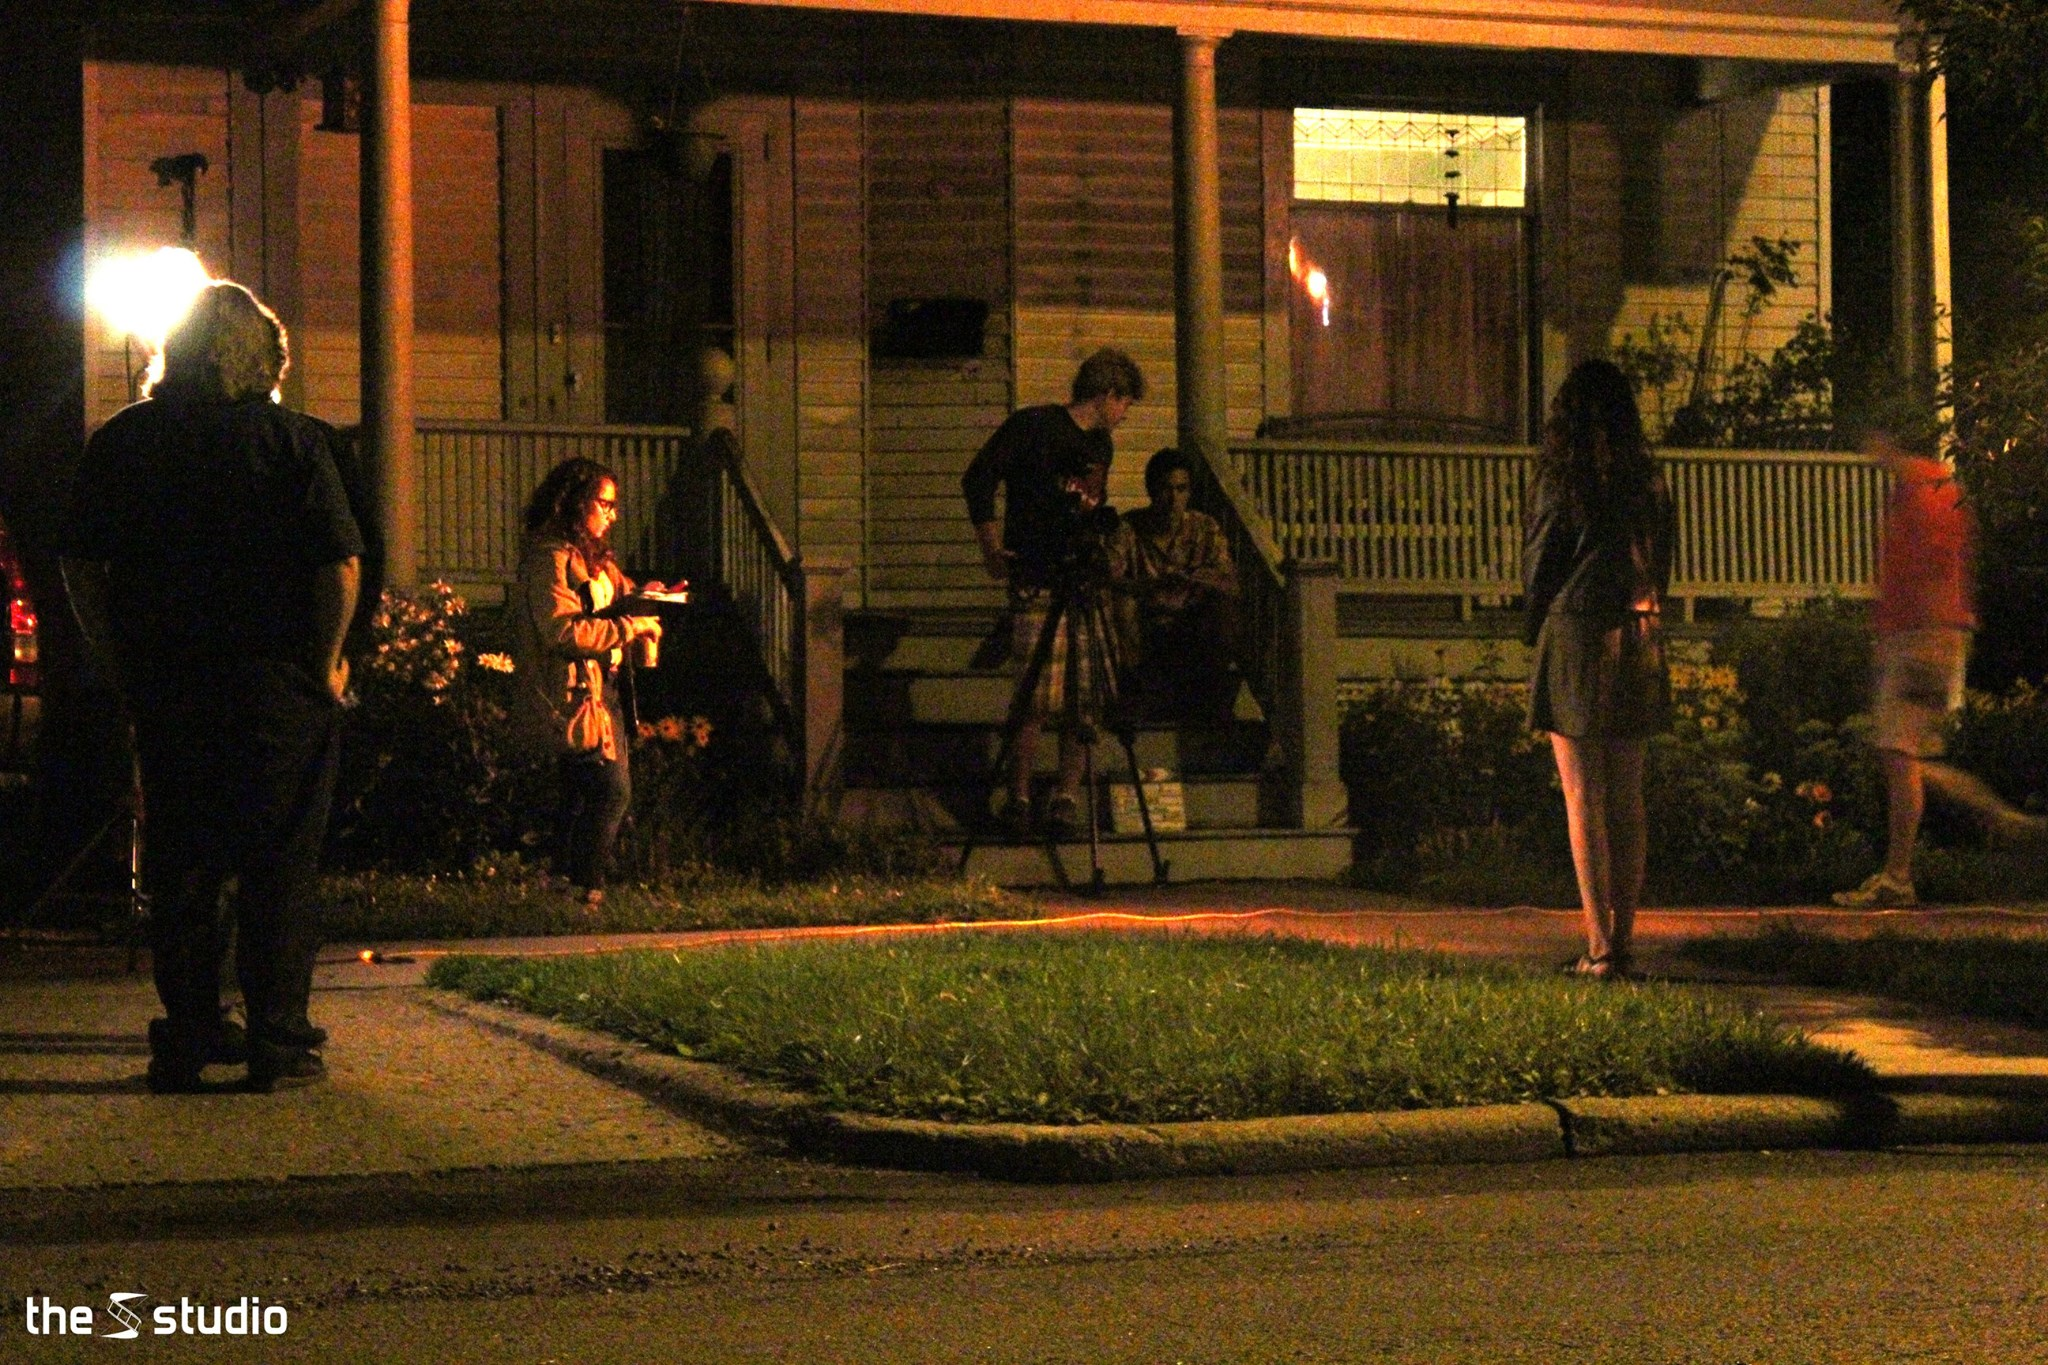 1413854667 elena deluccia  dan doran  and other students filming a scene of  22no fare 22